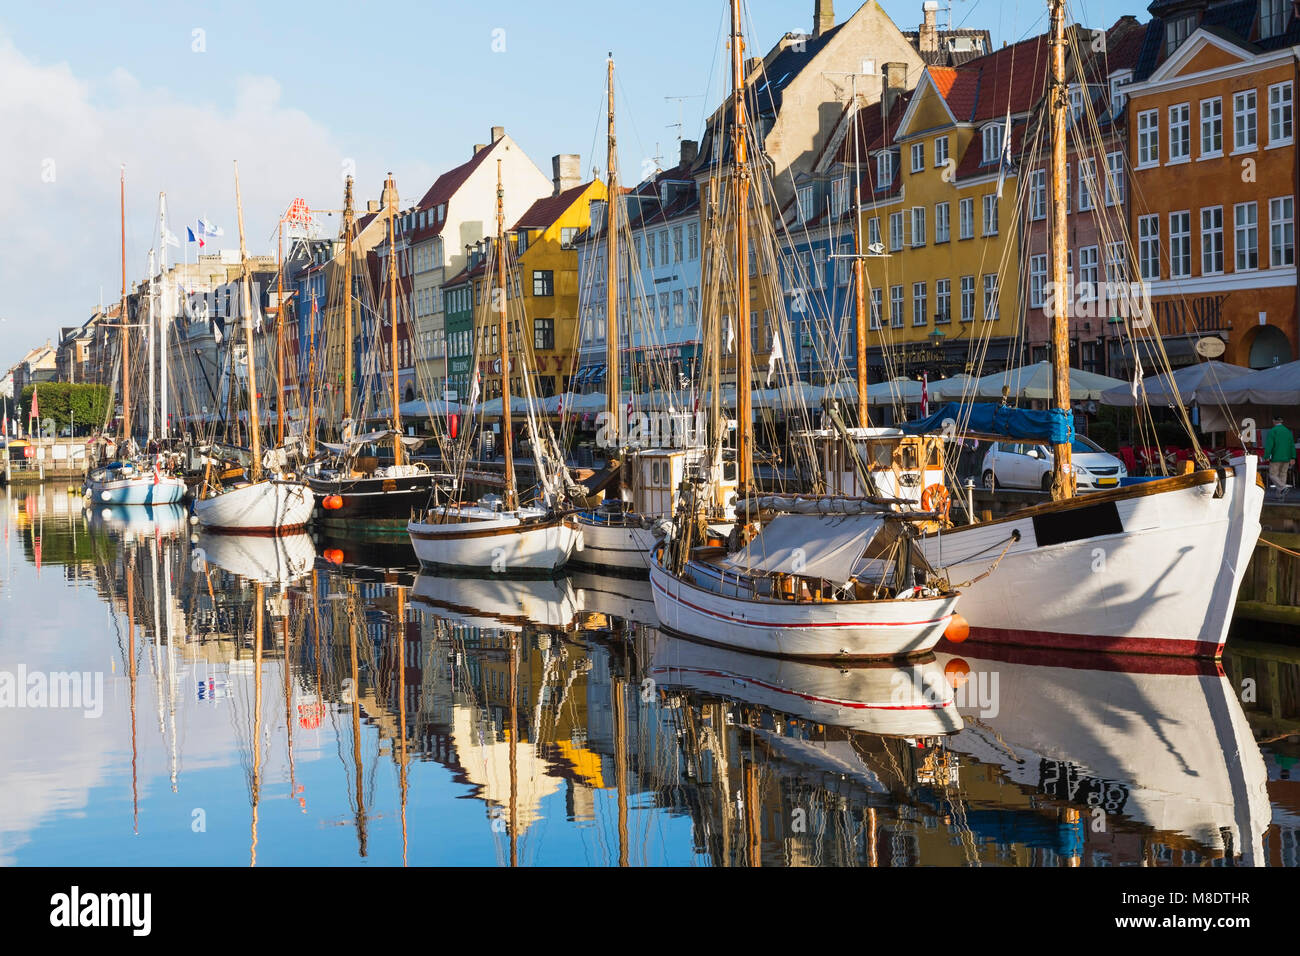 Moored boats and colourful 17th century town houses on Nyhavn canal, Copenhagen, Denmark - Stock Image